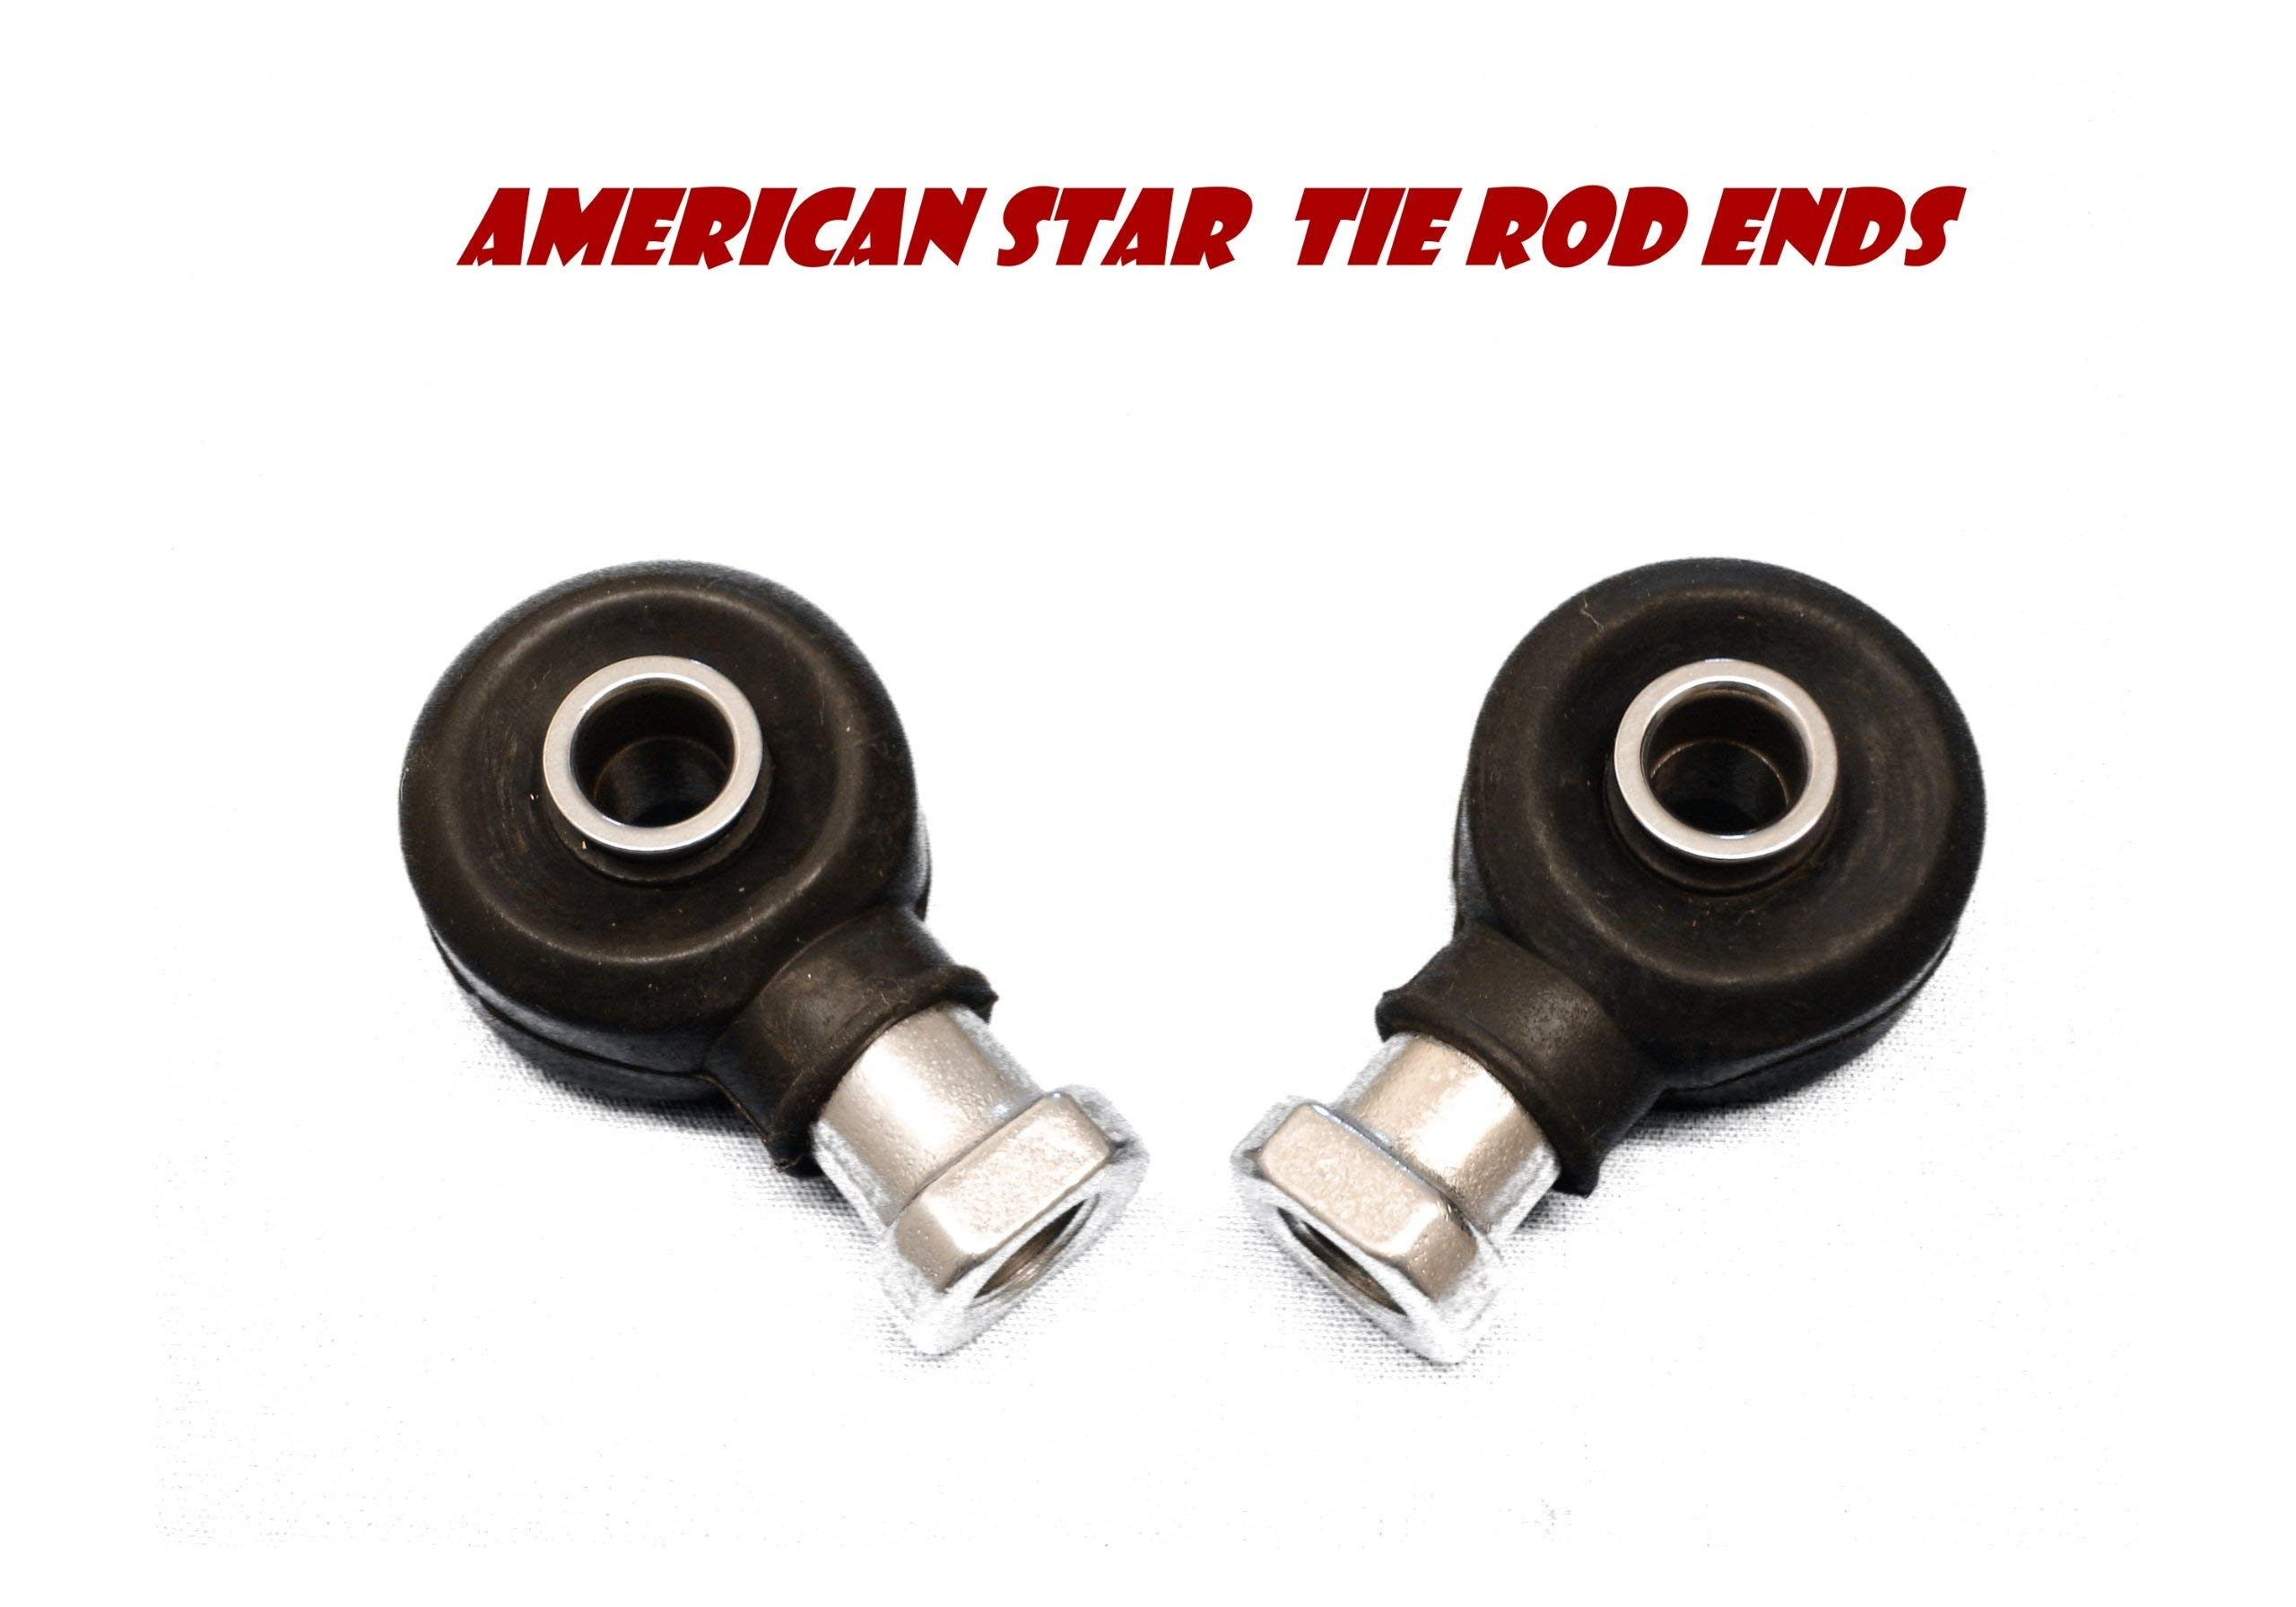 American Star 4130 Chromoly Polaris RZR & Ranger Outer Tie Rod Ends (2) for RZR XP 900 11-up, RZR 800 08-14, RZR 570 12-18 - Replaces Part # 7061054, 7061138, 7061053, 7061139, 7061019, 7061034